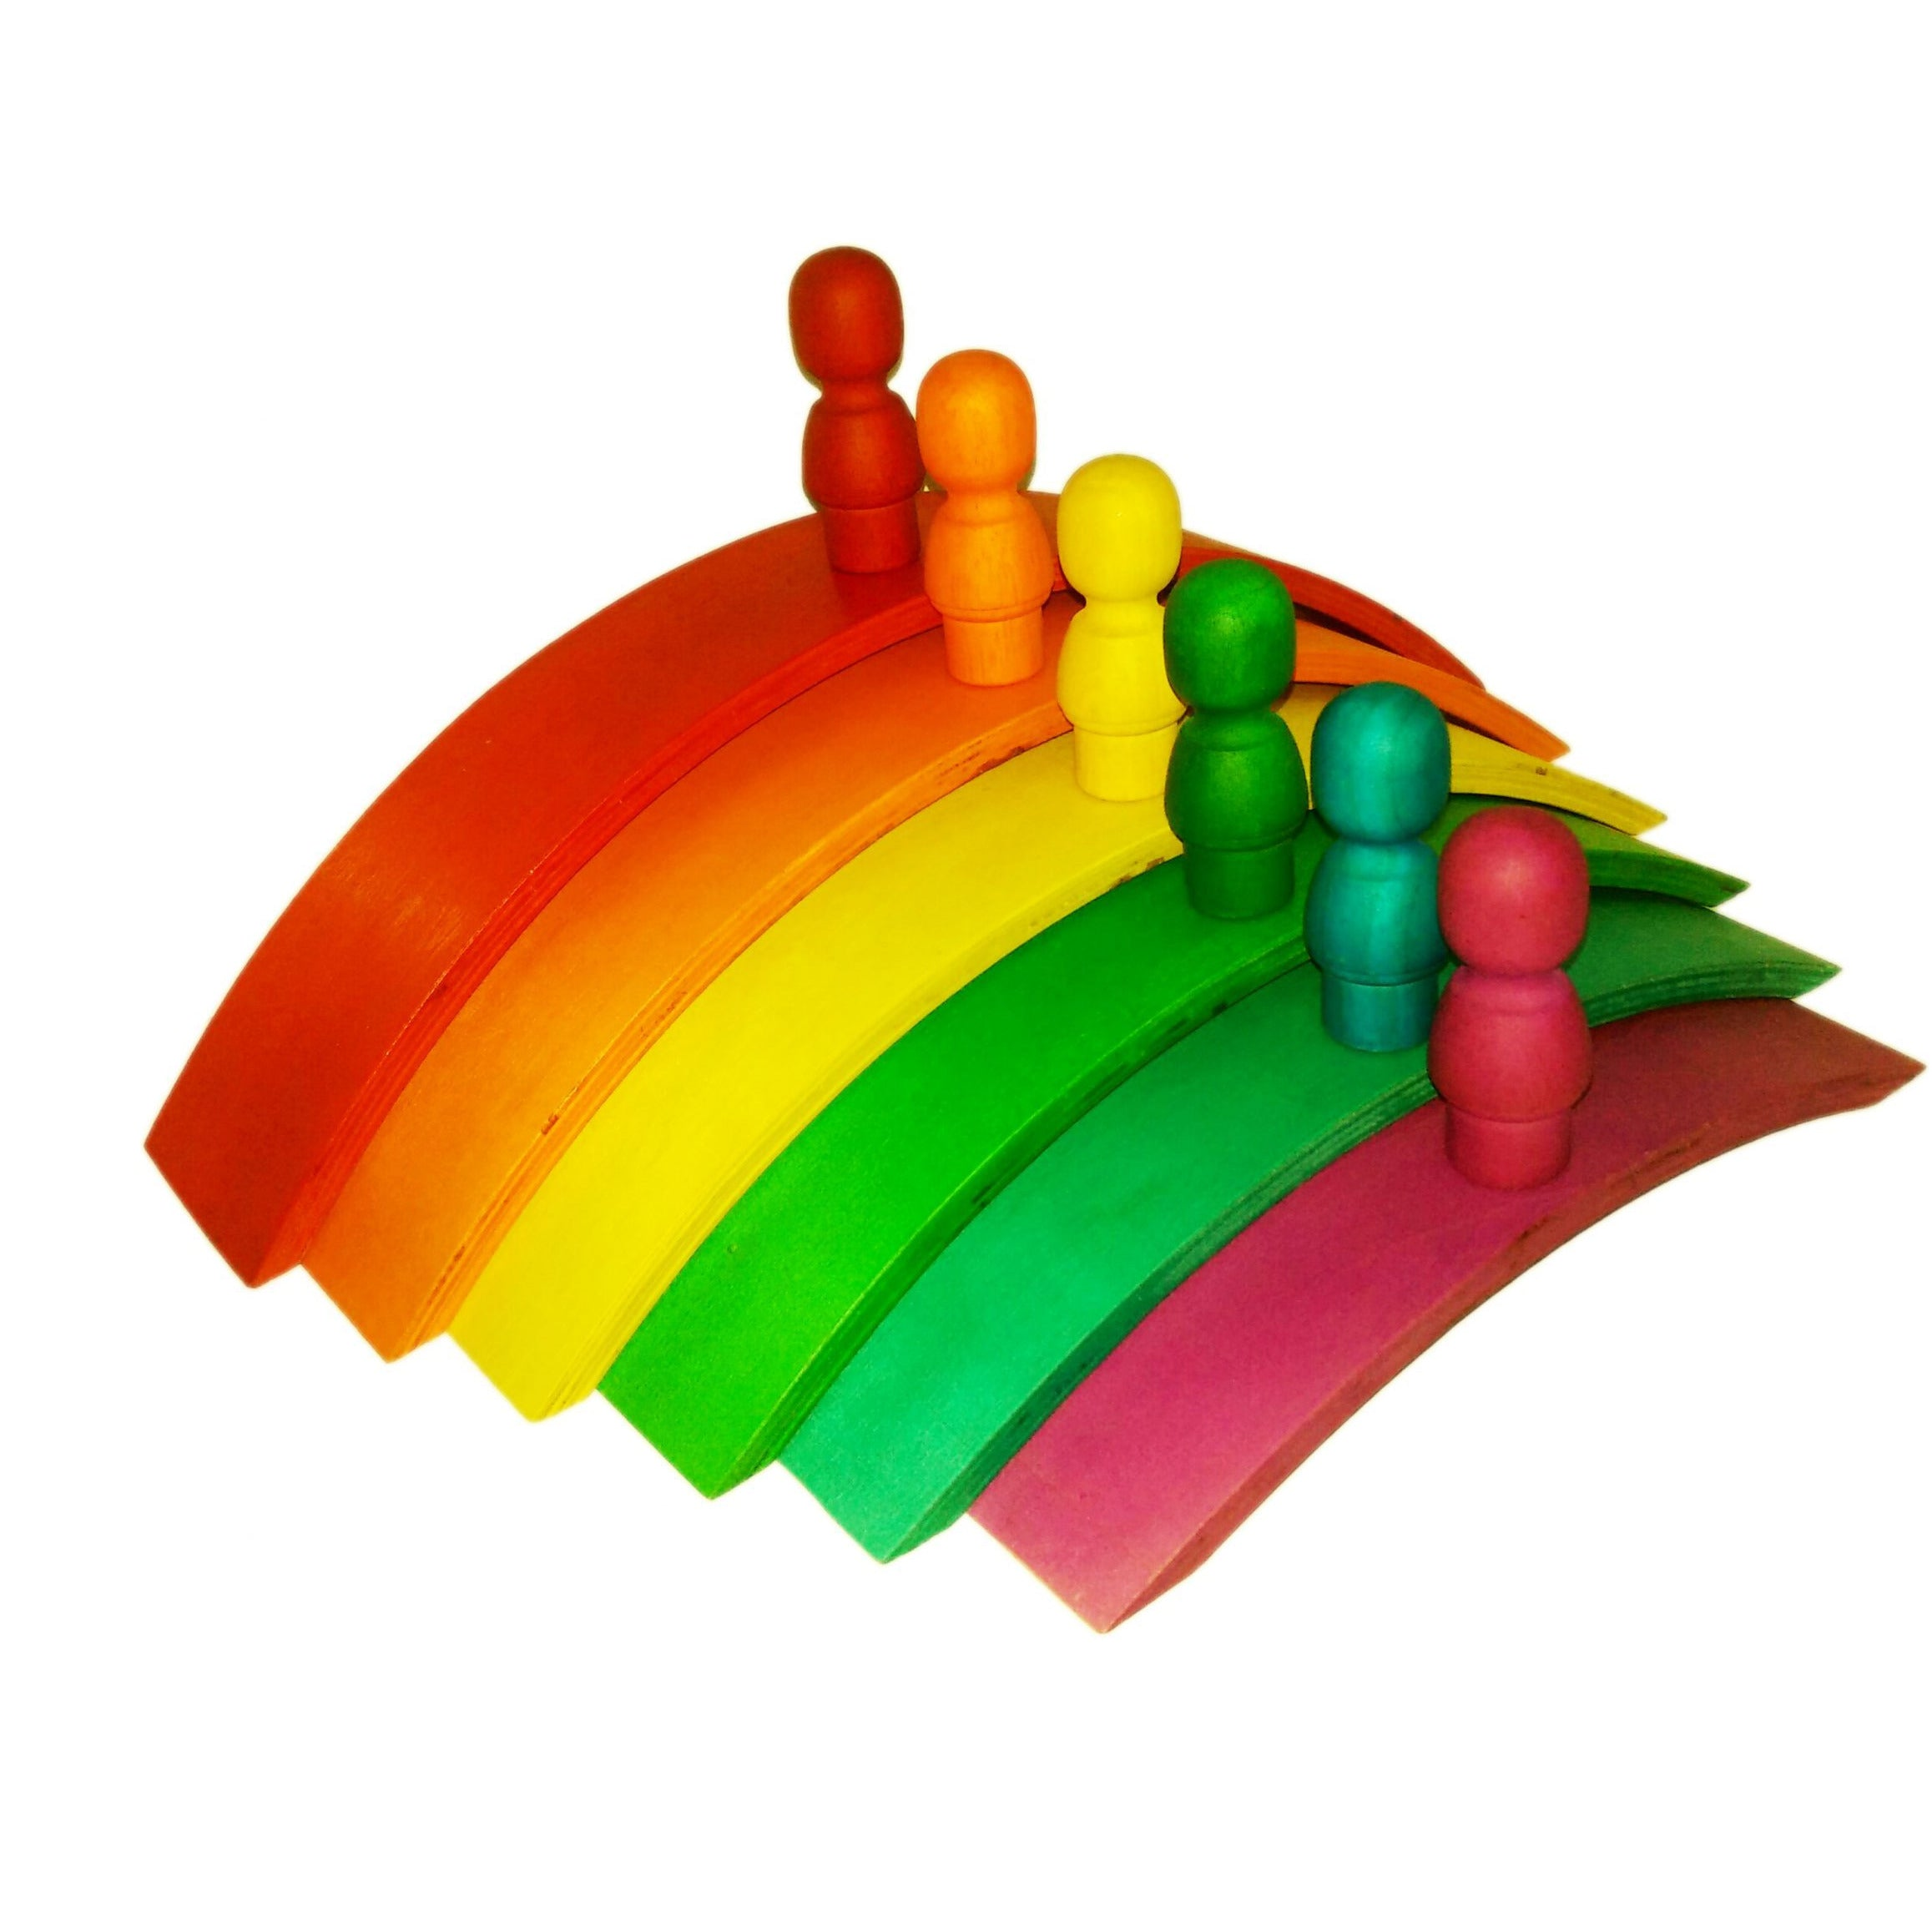 QToys Rainbow Wooden Arch Set Toy-MercadoGames.com